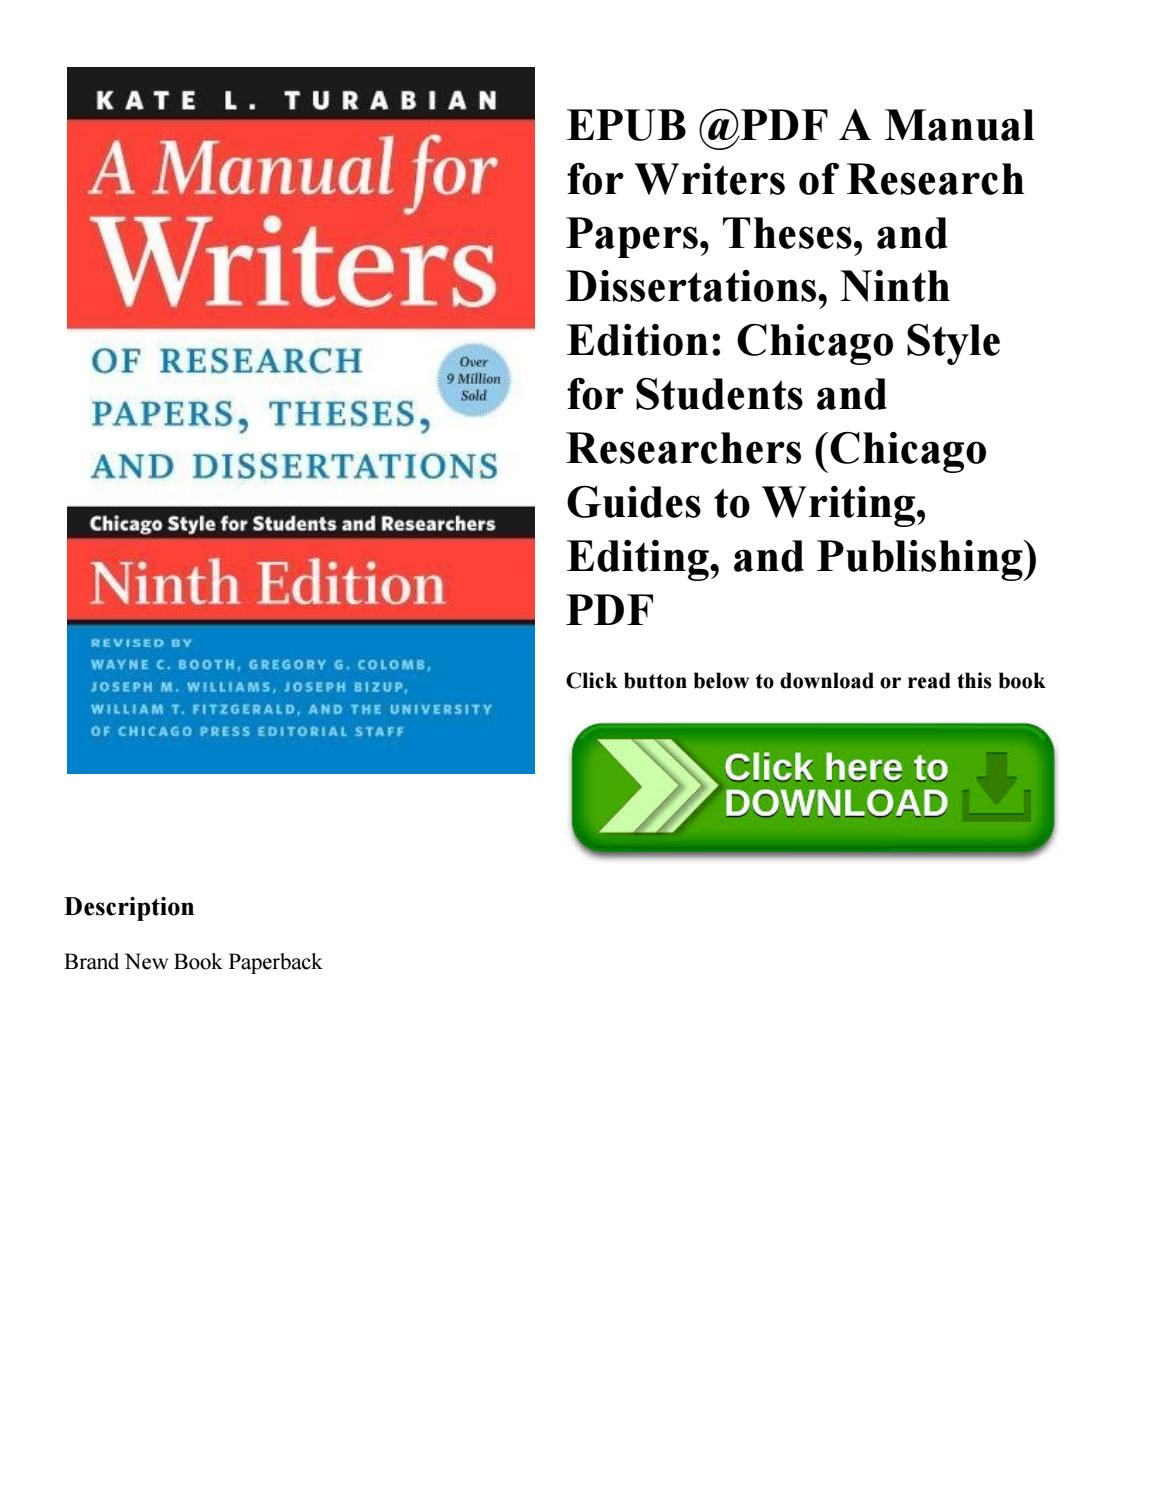 012 Research Paper Page 1 Manual For Writers Of Papers Theses And Dissertations 9th Frightening A Edition Pdf Full